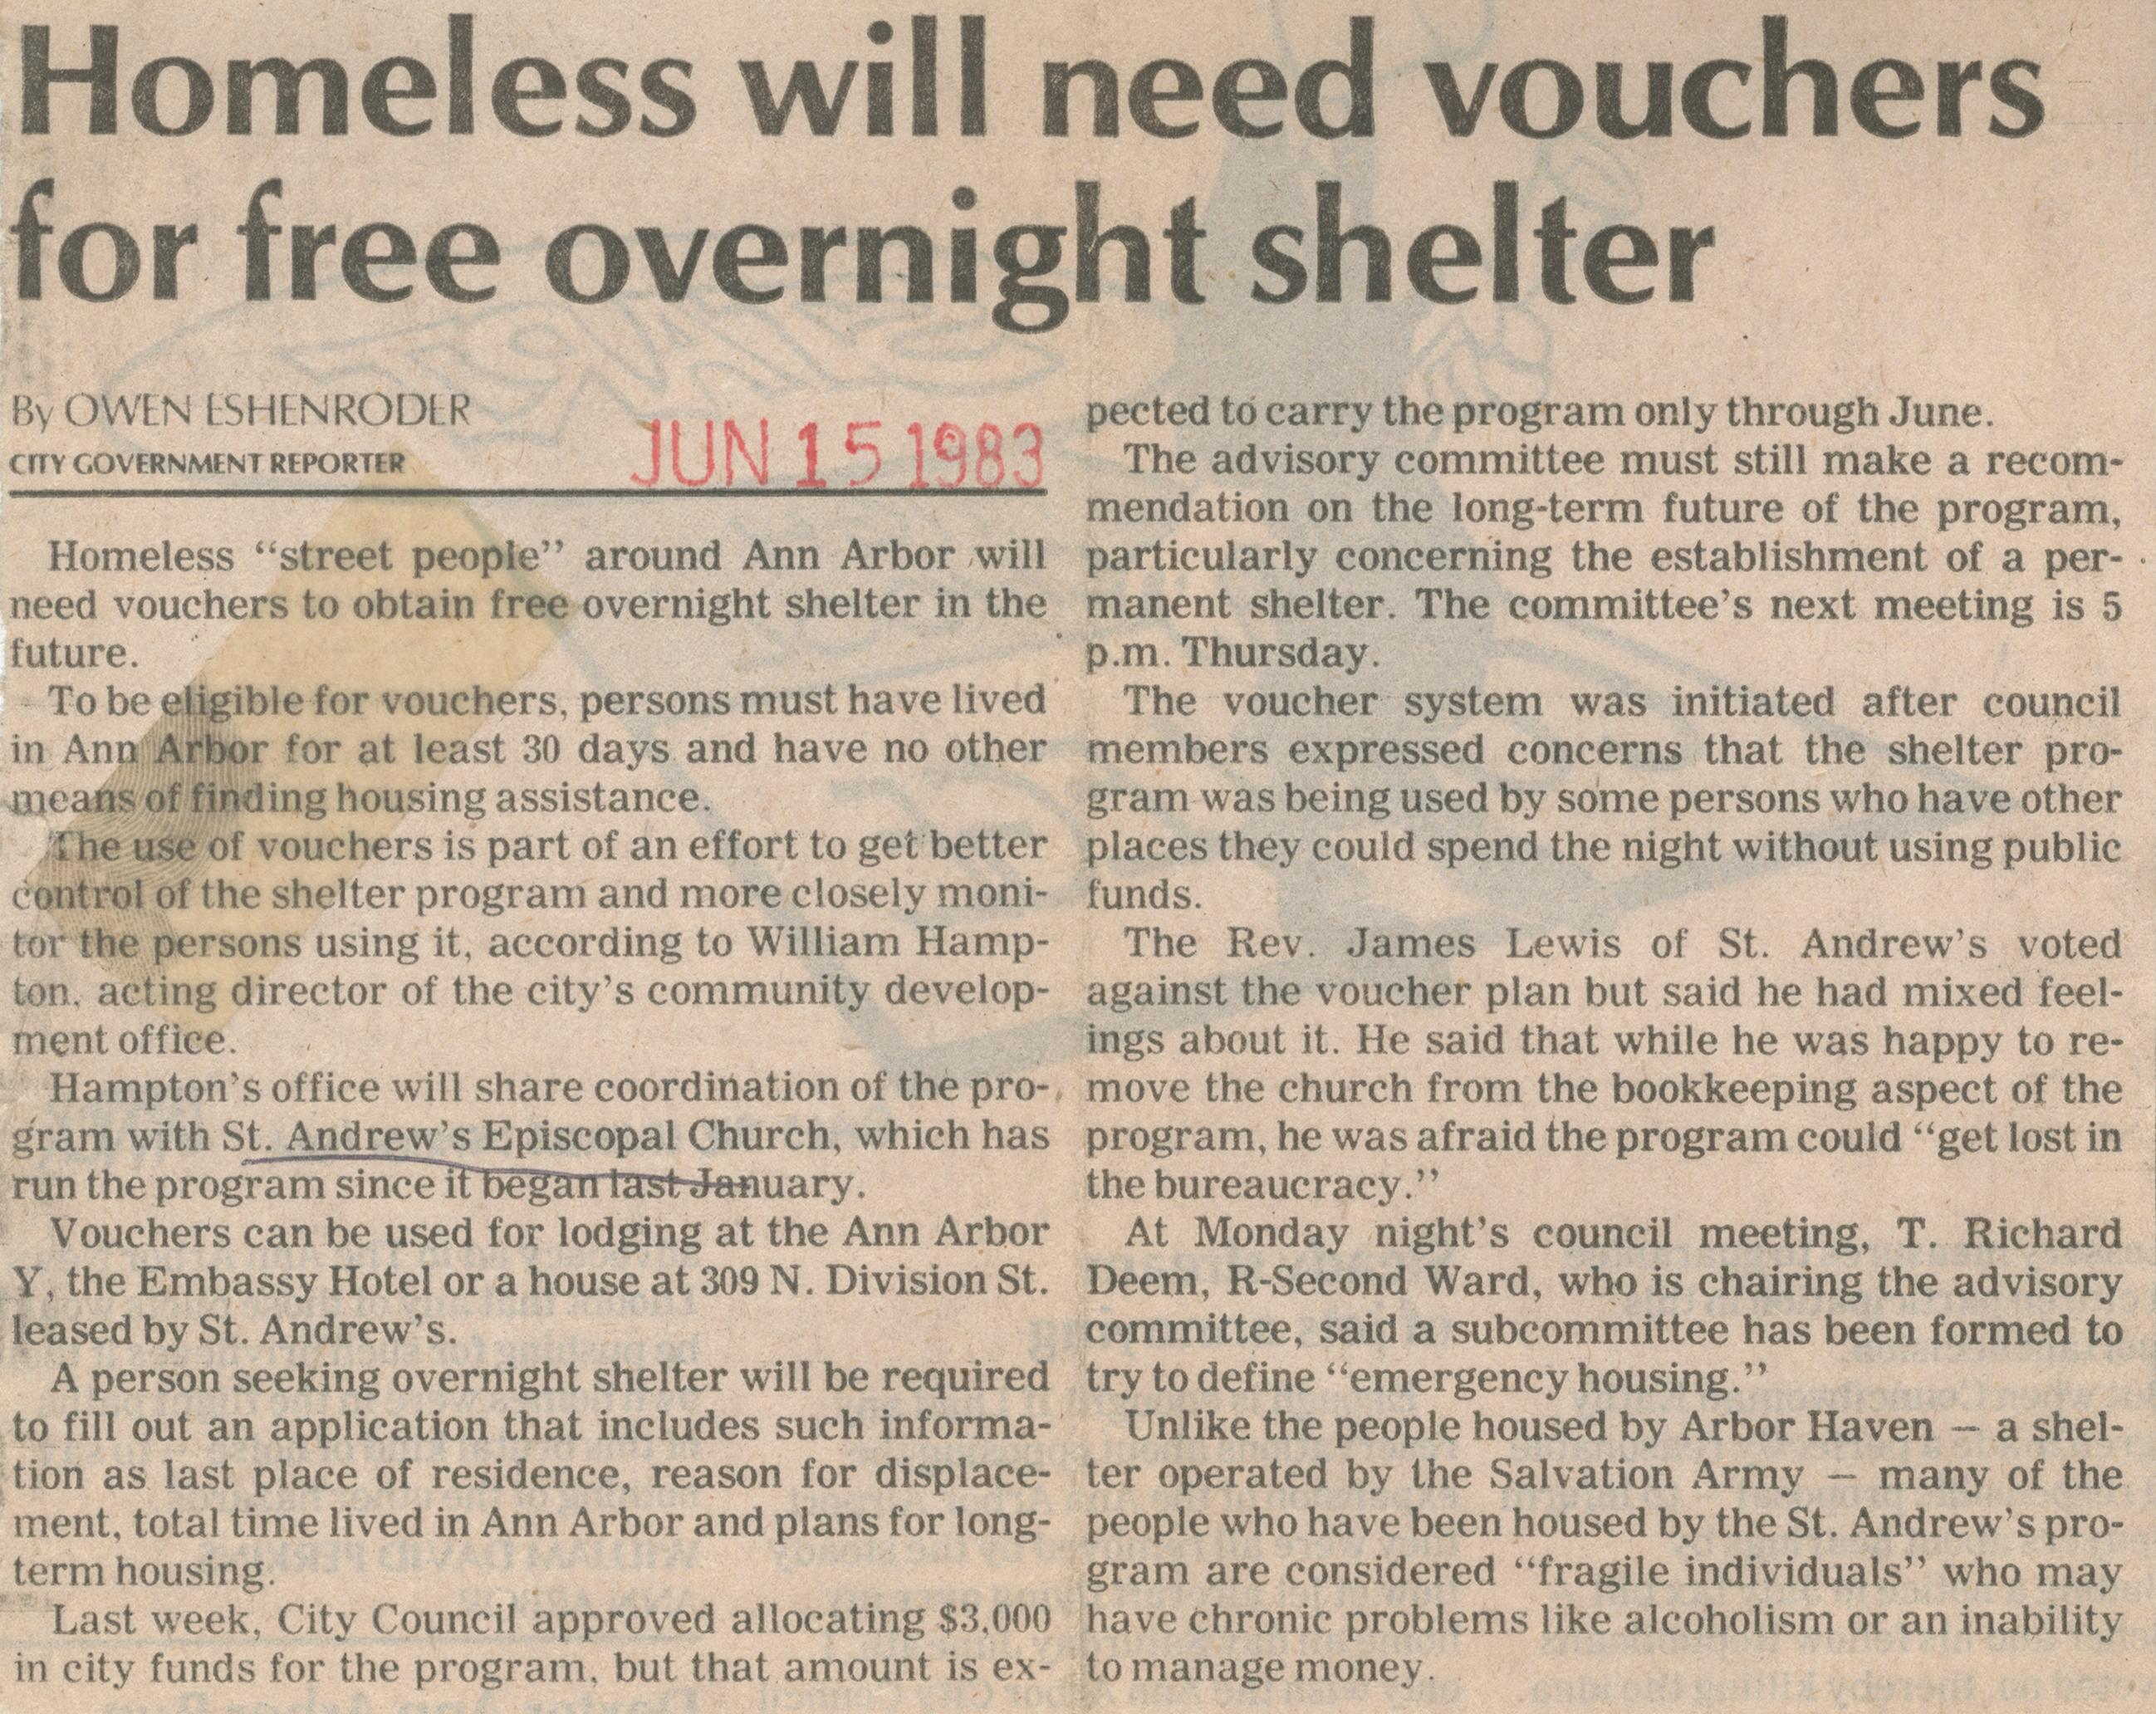 Homeless Will Need Vouchers for Free Overnight Shelter image